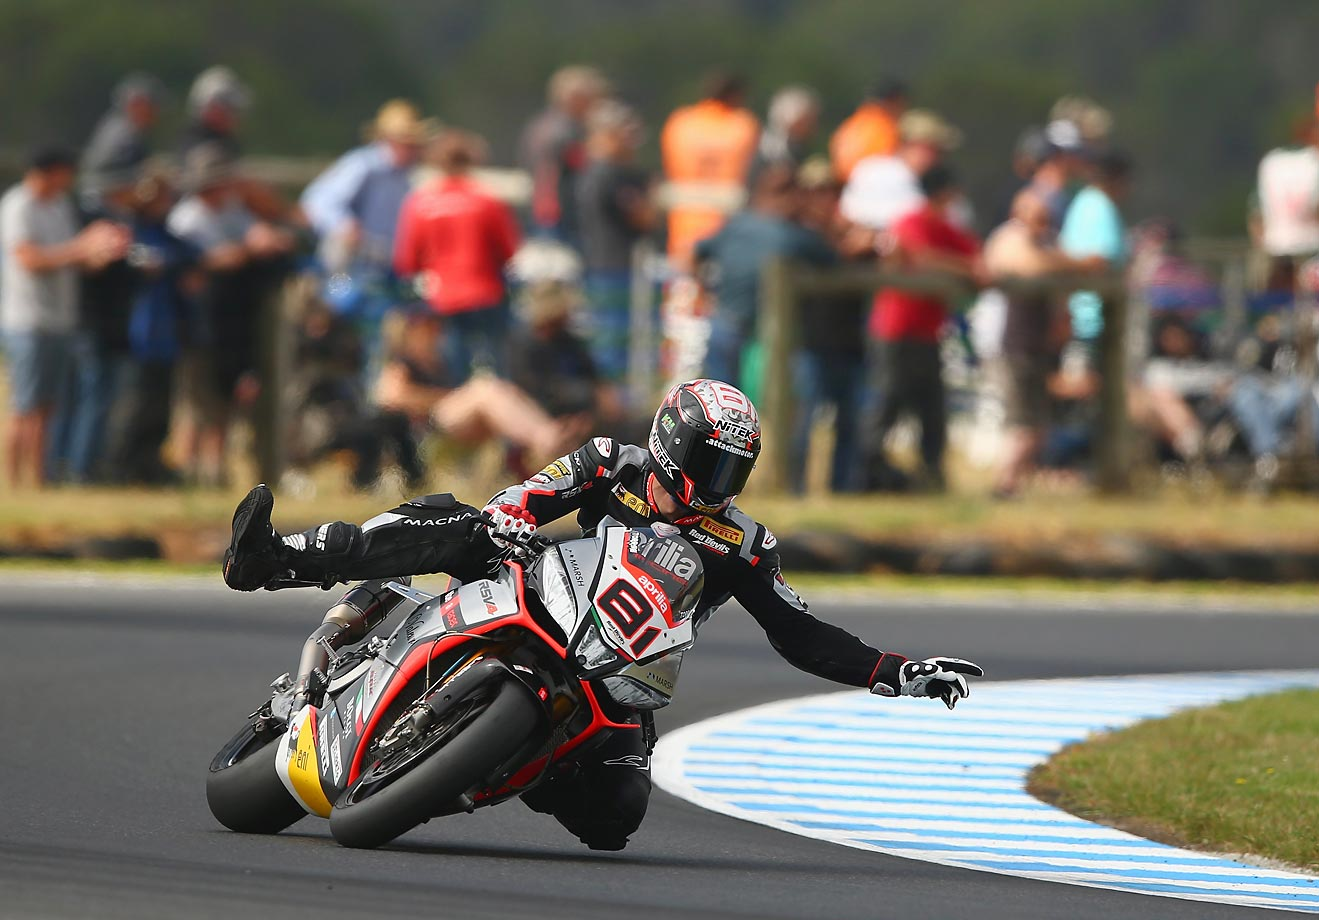 Jordi Torres of Spain rides no-hands during practice for the World Superbikes World Championship Australian Round at Phillip Island Grand Prix Circuit.